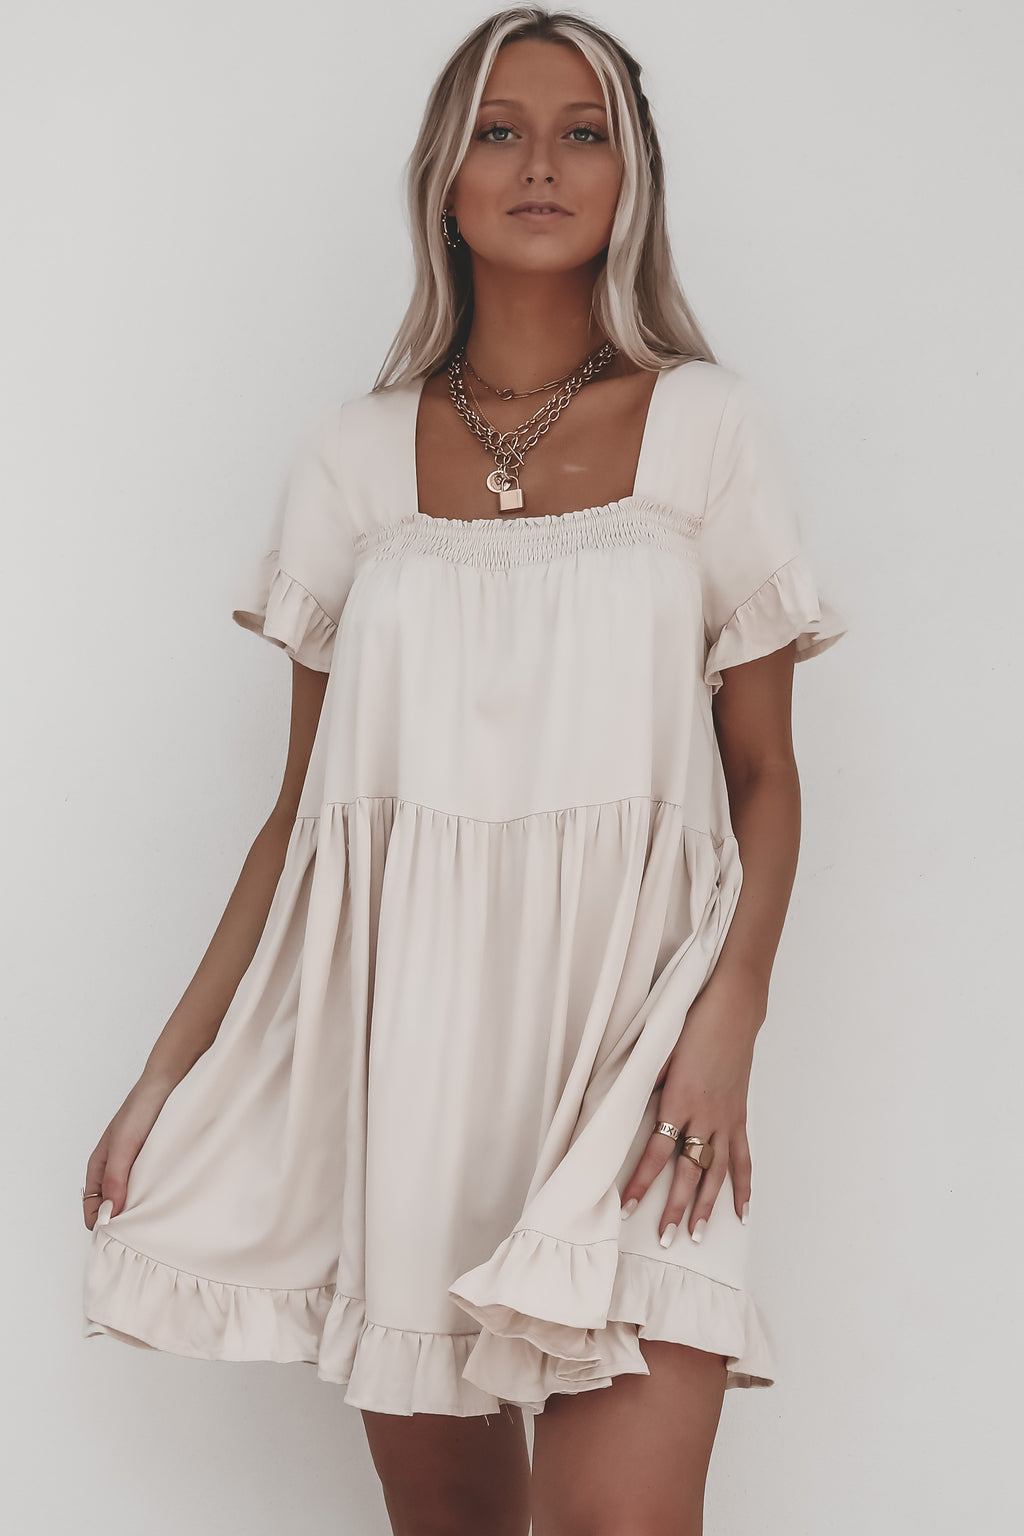 Blush Baby Blush Soft Blush Babydoll Dress